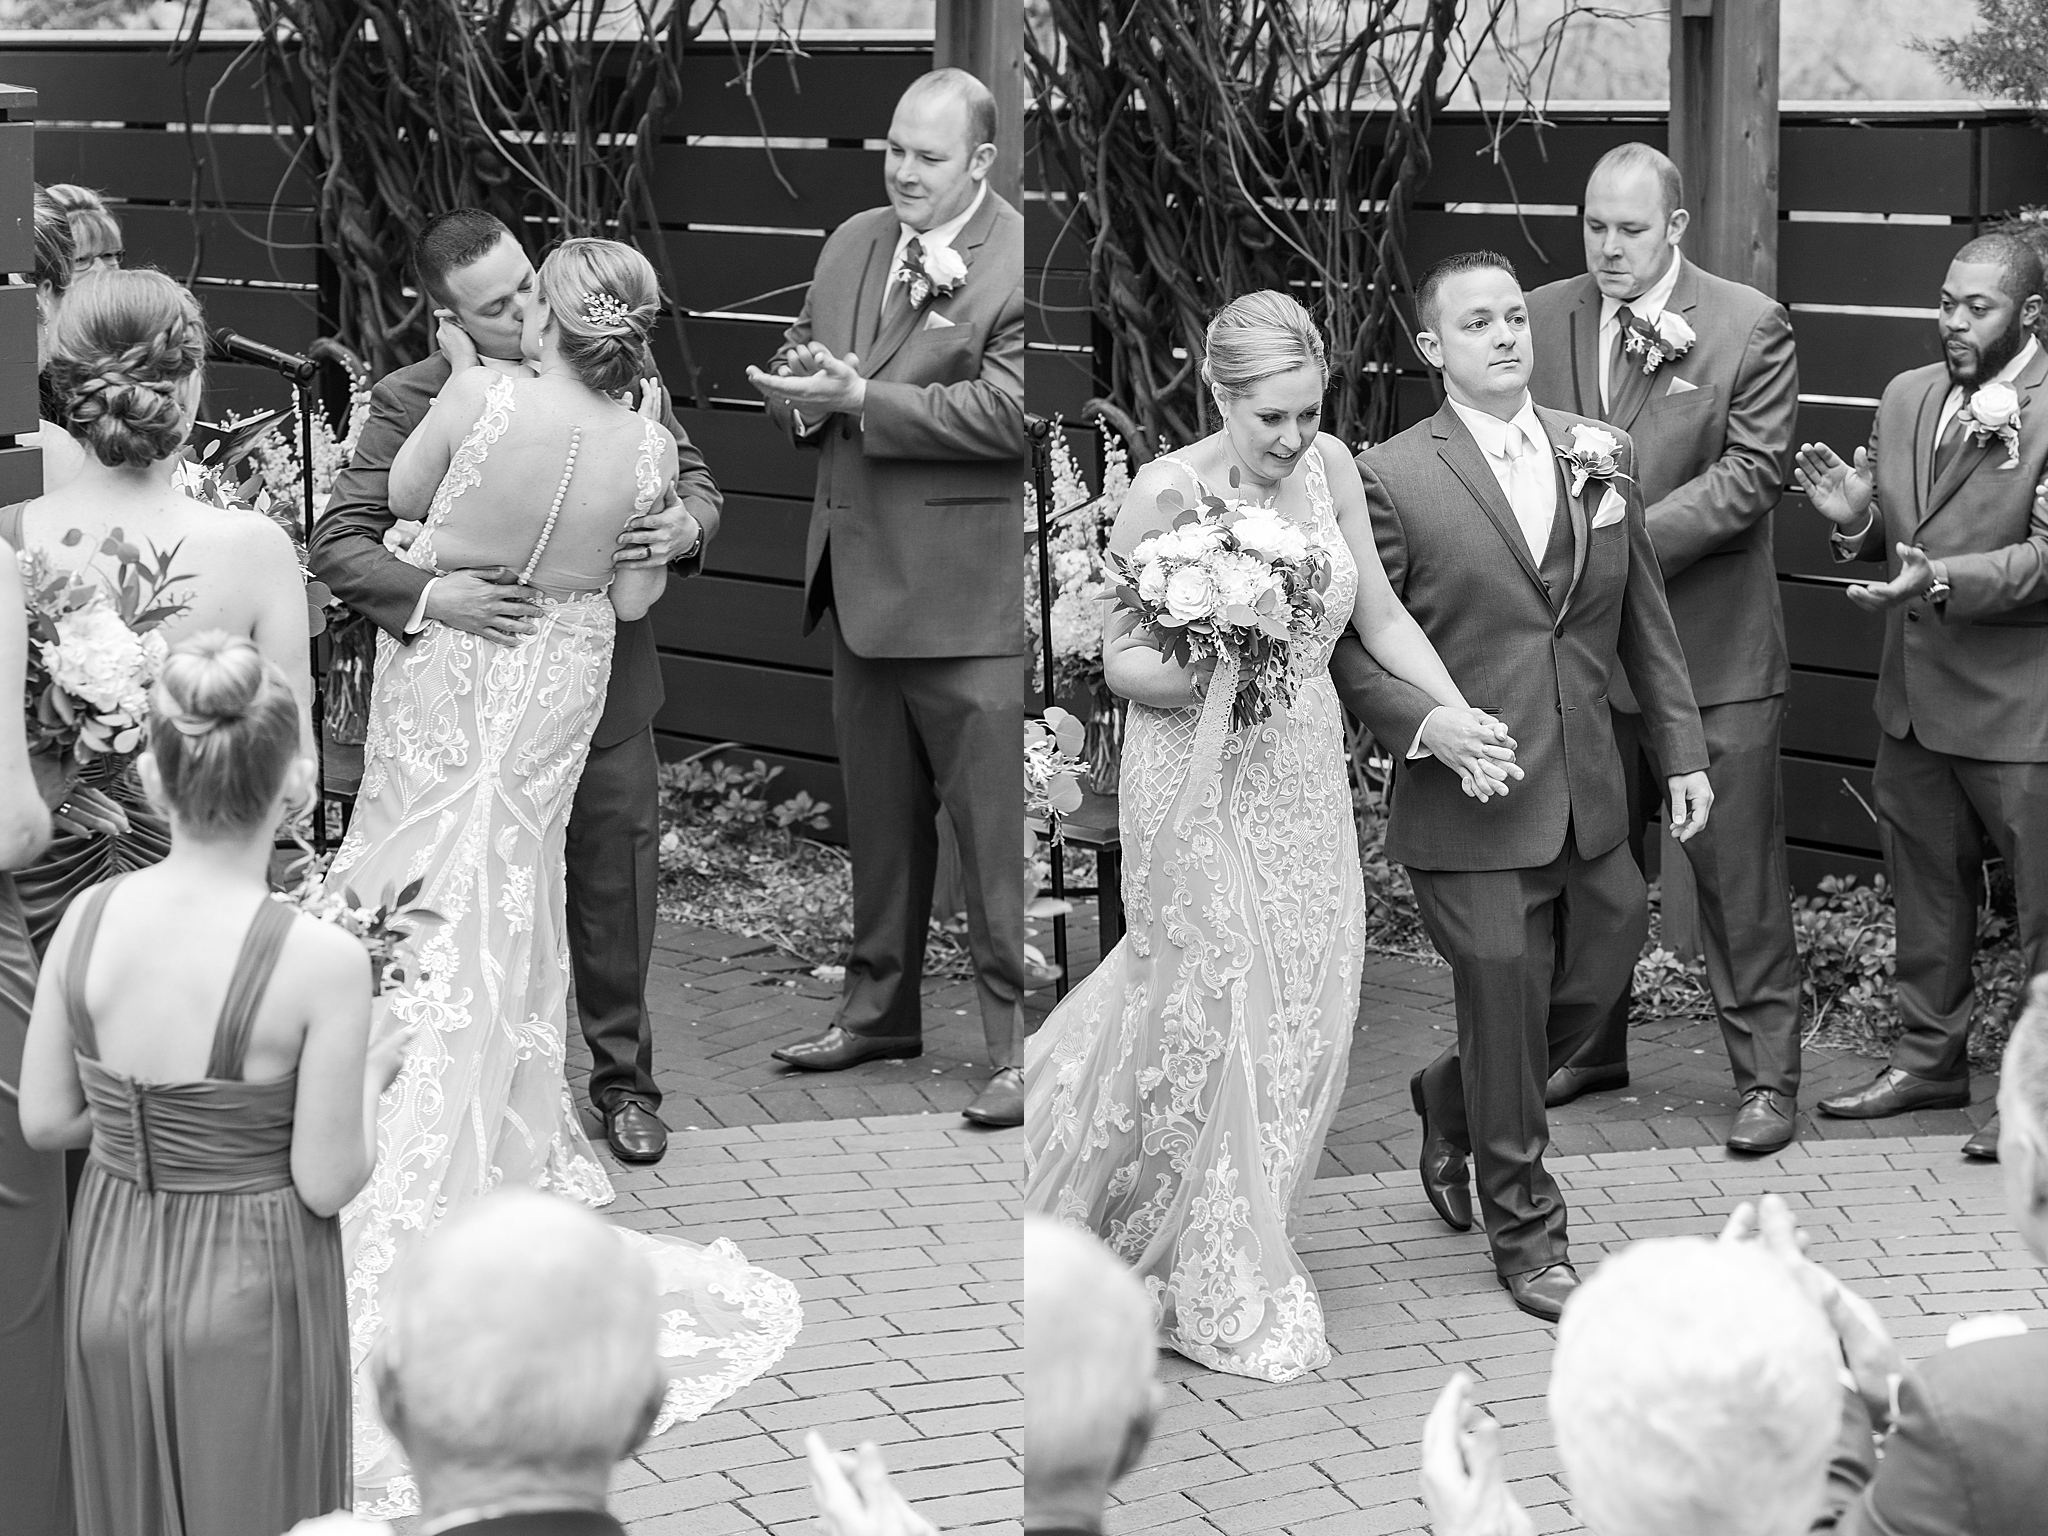 modern-romantic-wedding-photography-at-webers-in-ann-arbor-michigan-by-courtney-carolyn-photography_0065.jpg